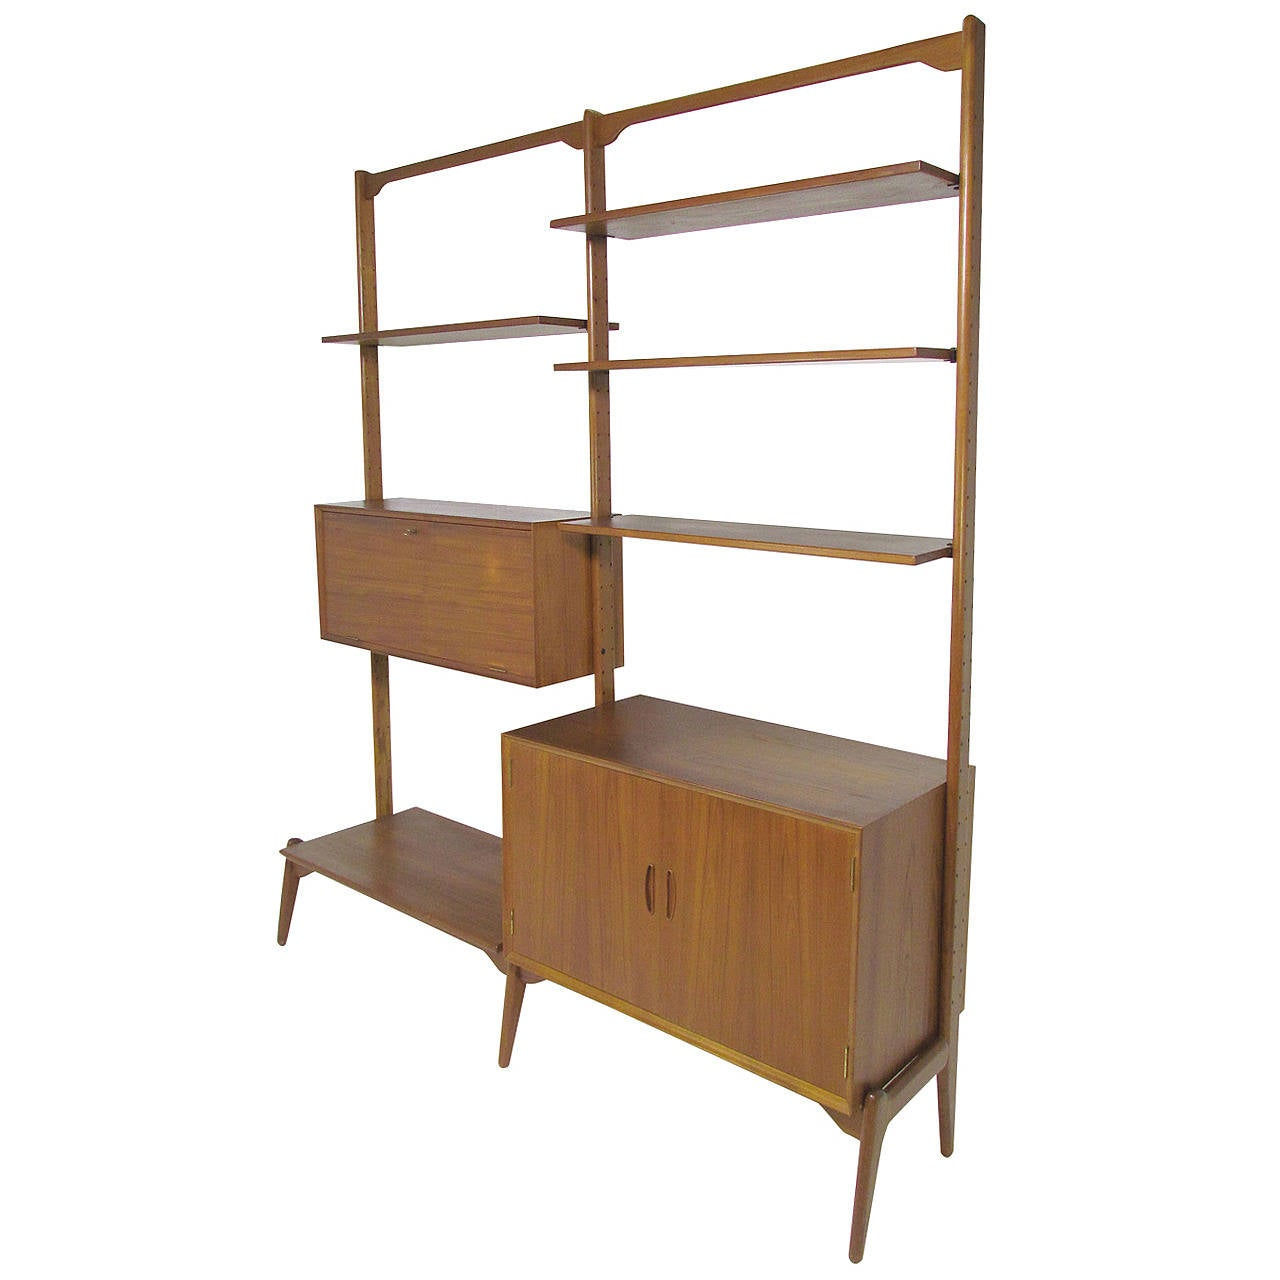 Cado Style Danish Teak Freestanding Wall Unit By Kurt